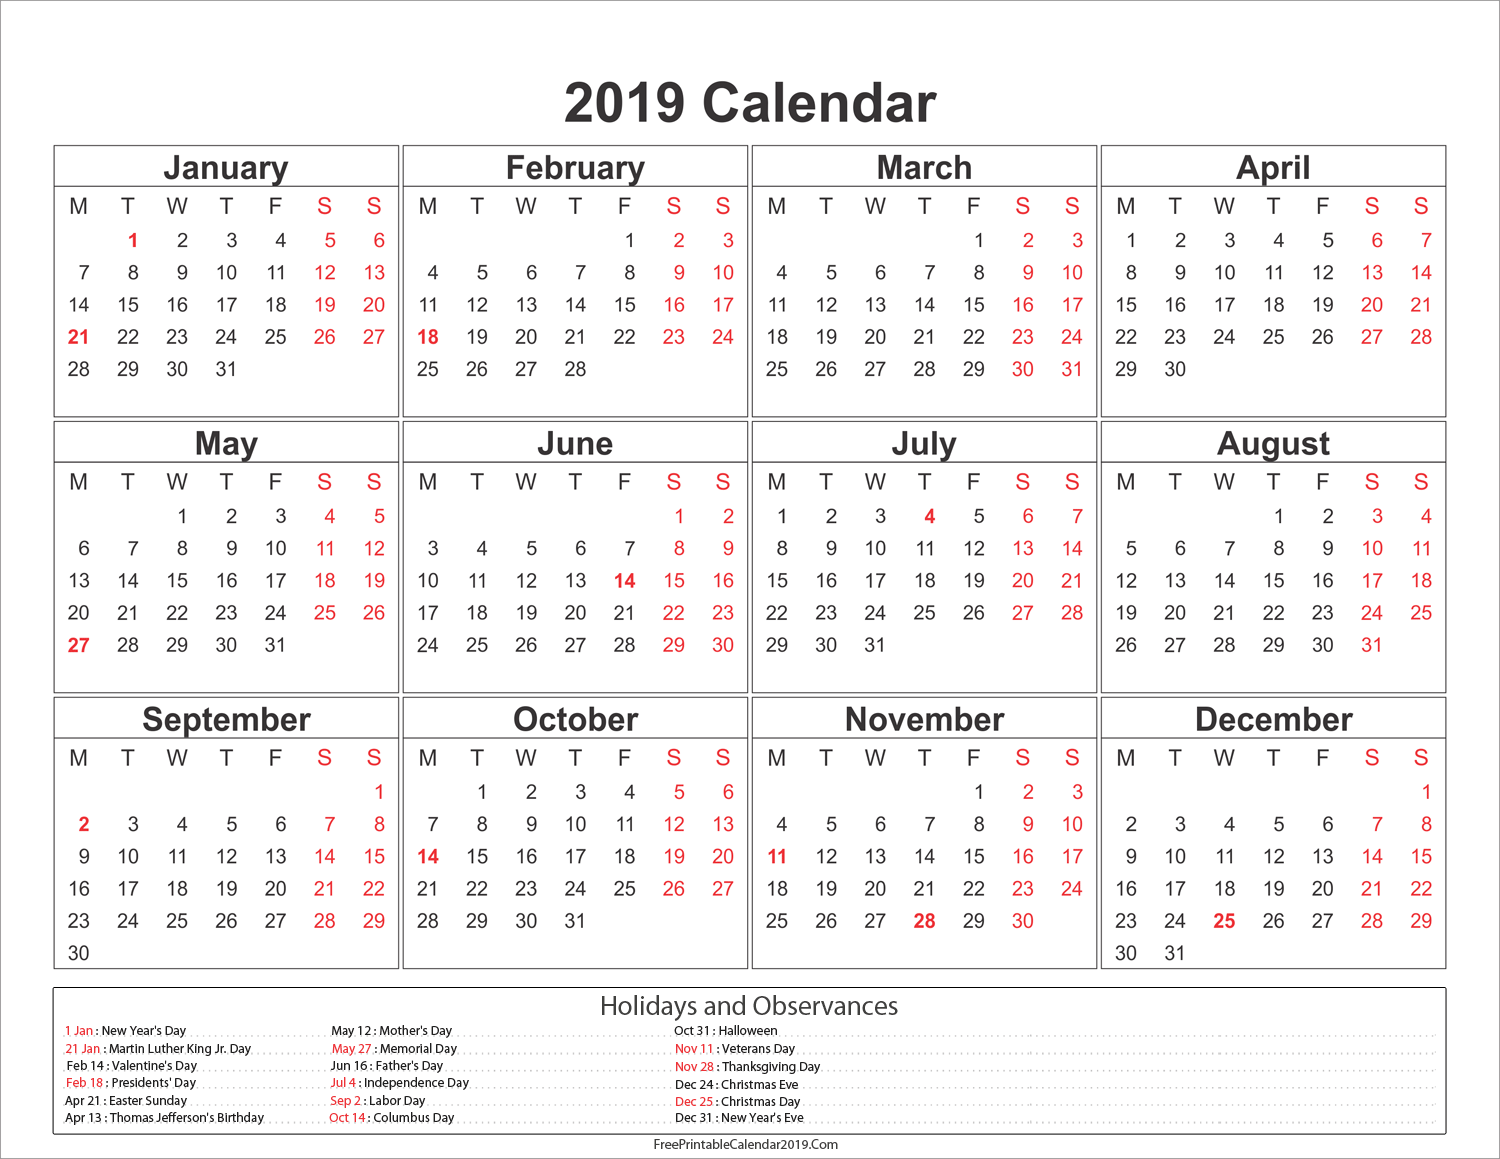 2019 Leave Year Calendar With Holidays US UK Australia Canada 2018